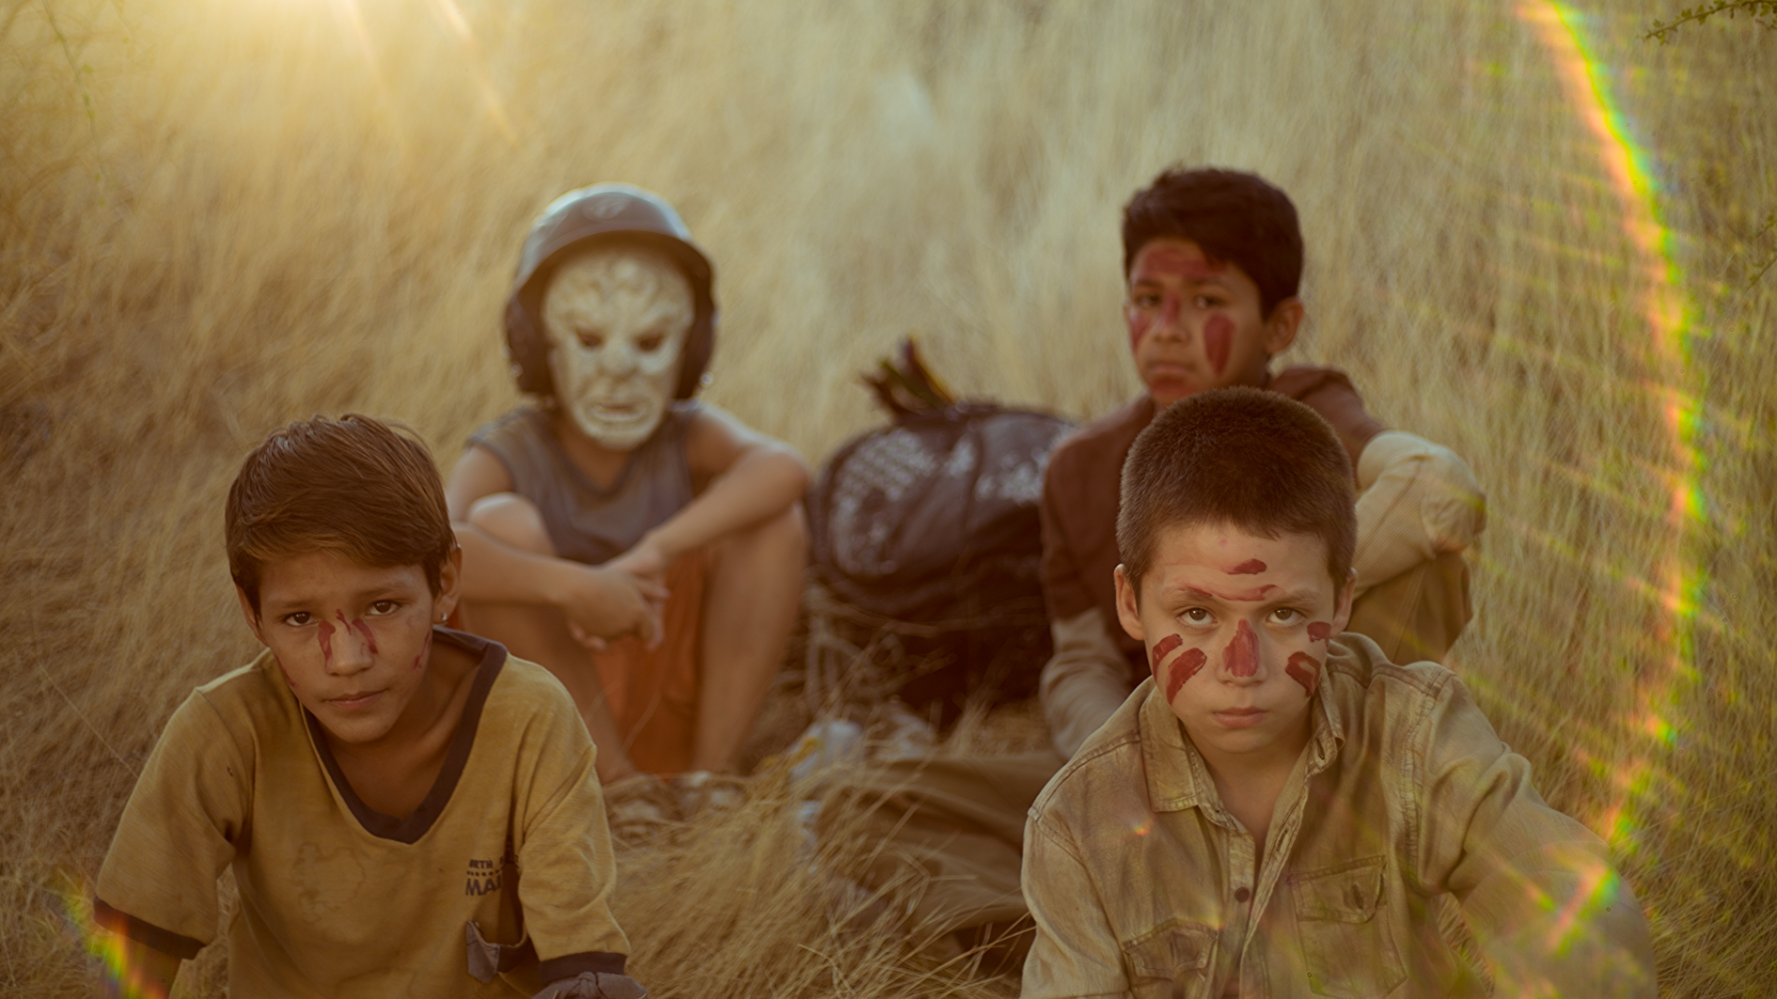 13 Latin American Movies You Can See in NY That Played Cannes, Venice & Other Illustrious Festivals